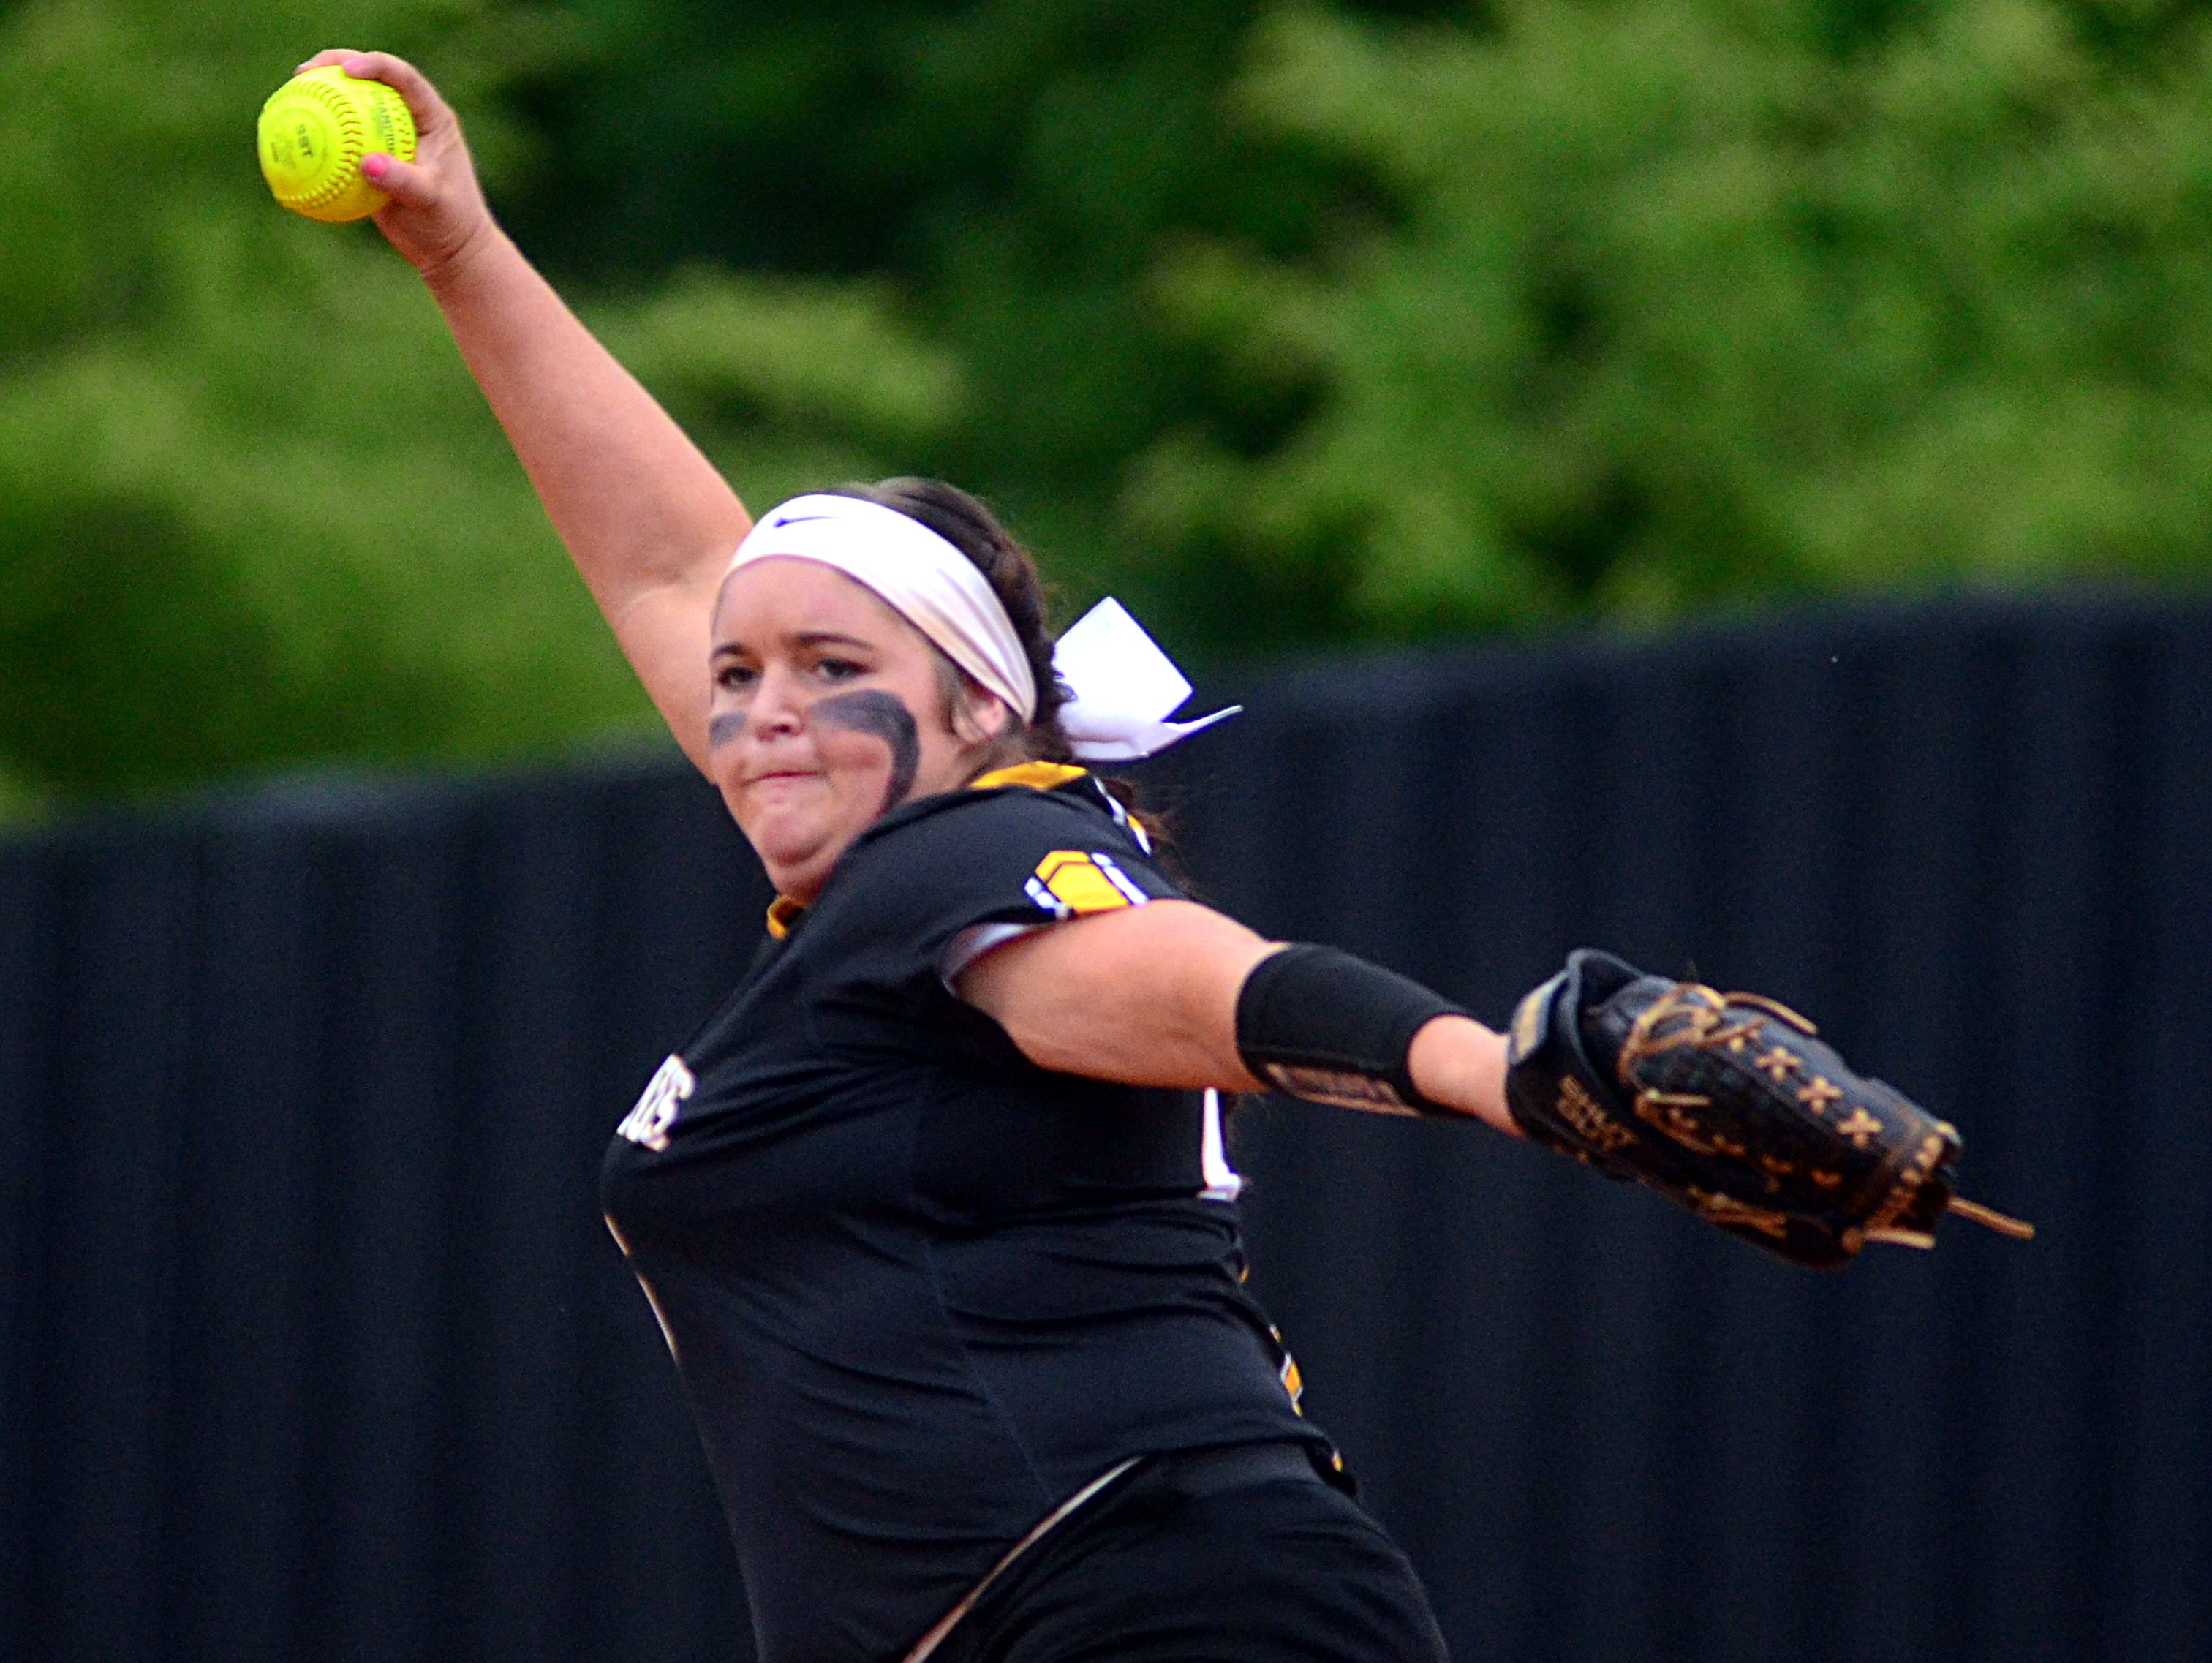 Hendersonville High senior Carley Carlisle struck out 10 Henry County hitters in Monday evening's 5-2 victory.